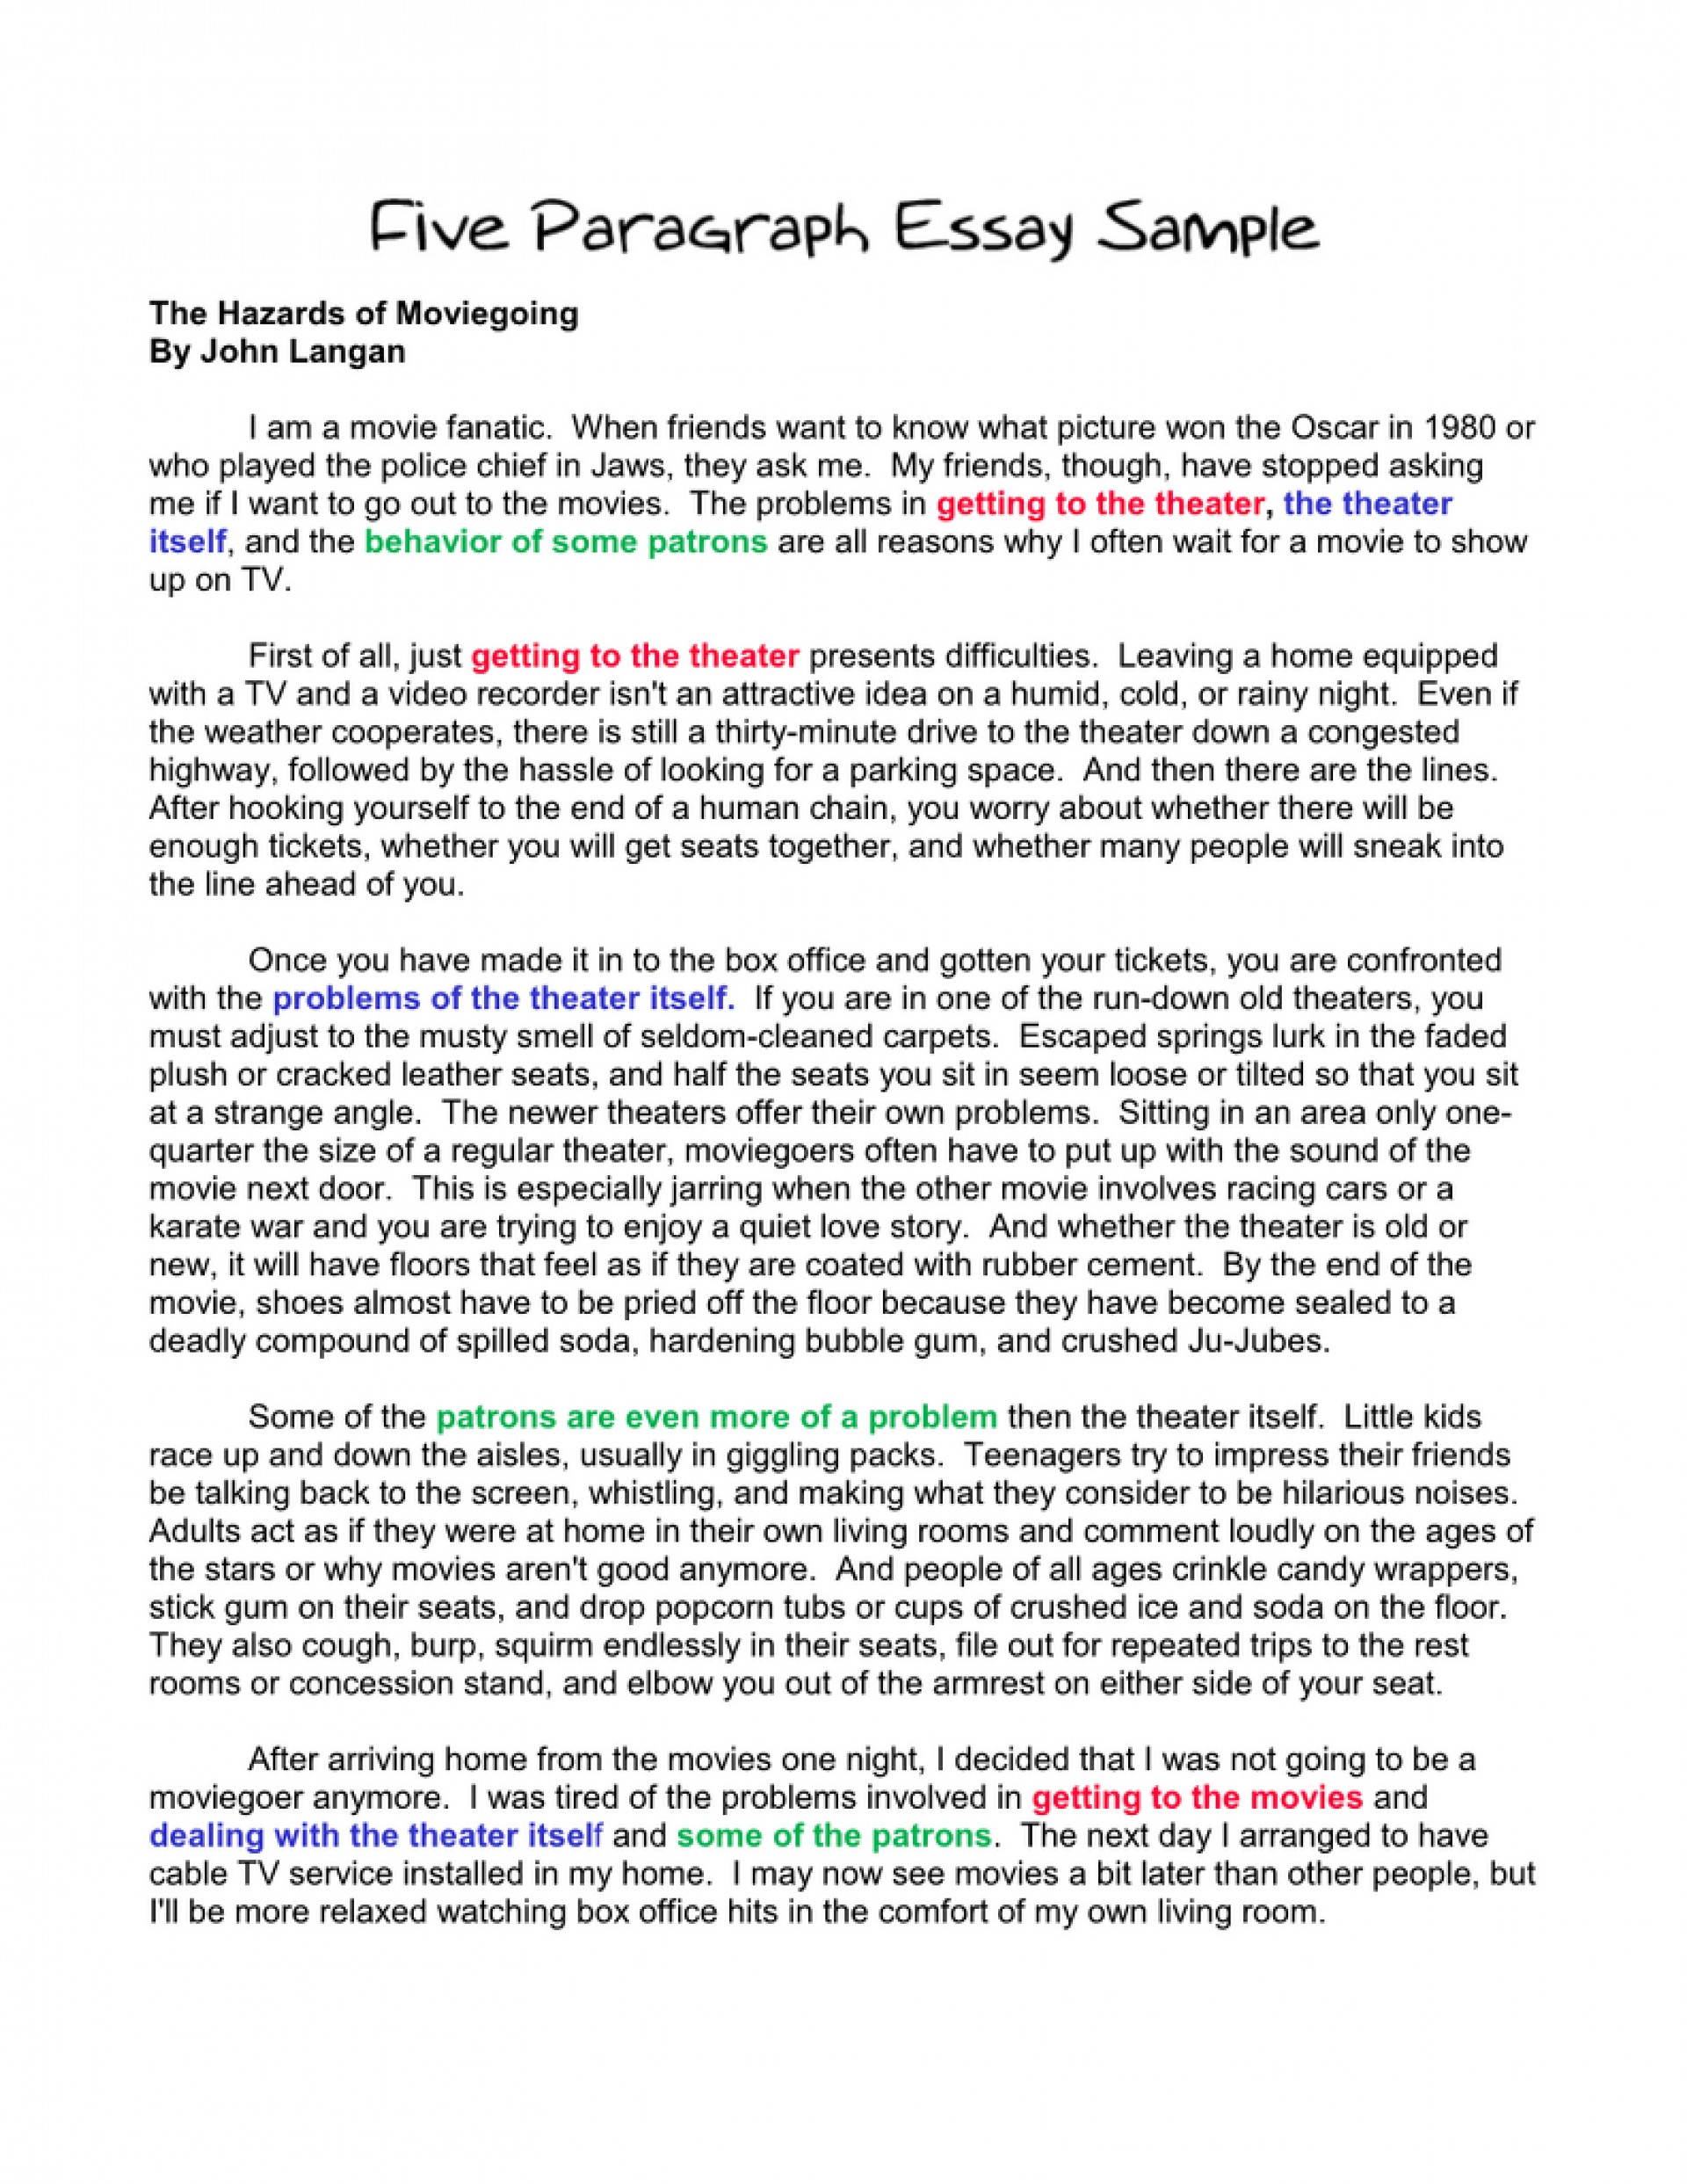 002 Paragraph Essay Sample Example Basic Outline An How To Start Sentence In First Second Write Third Body Conclusion Argumentative Stirring 5 High School Pdf Template Five 1920